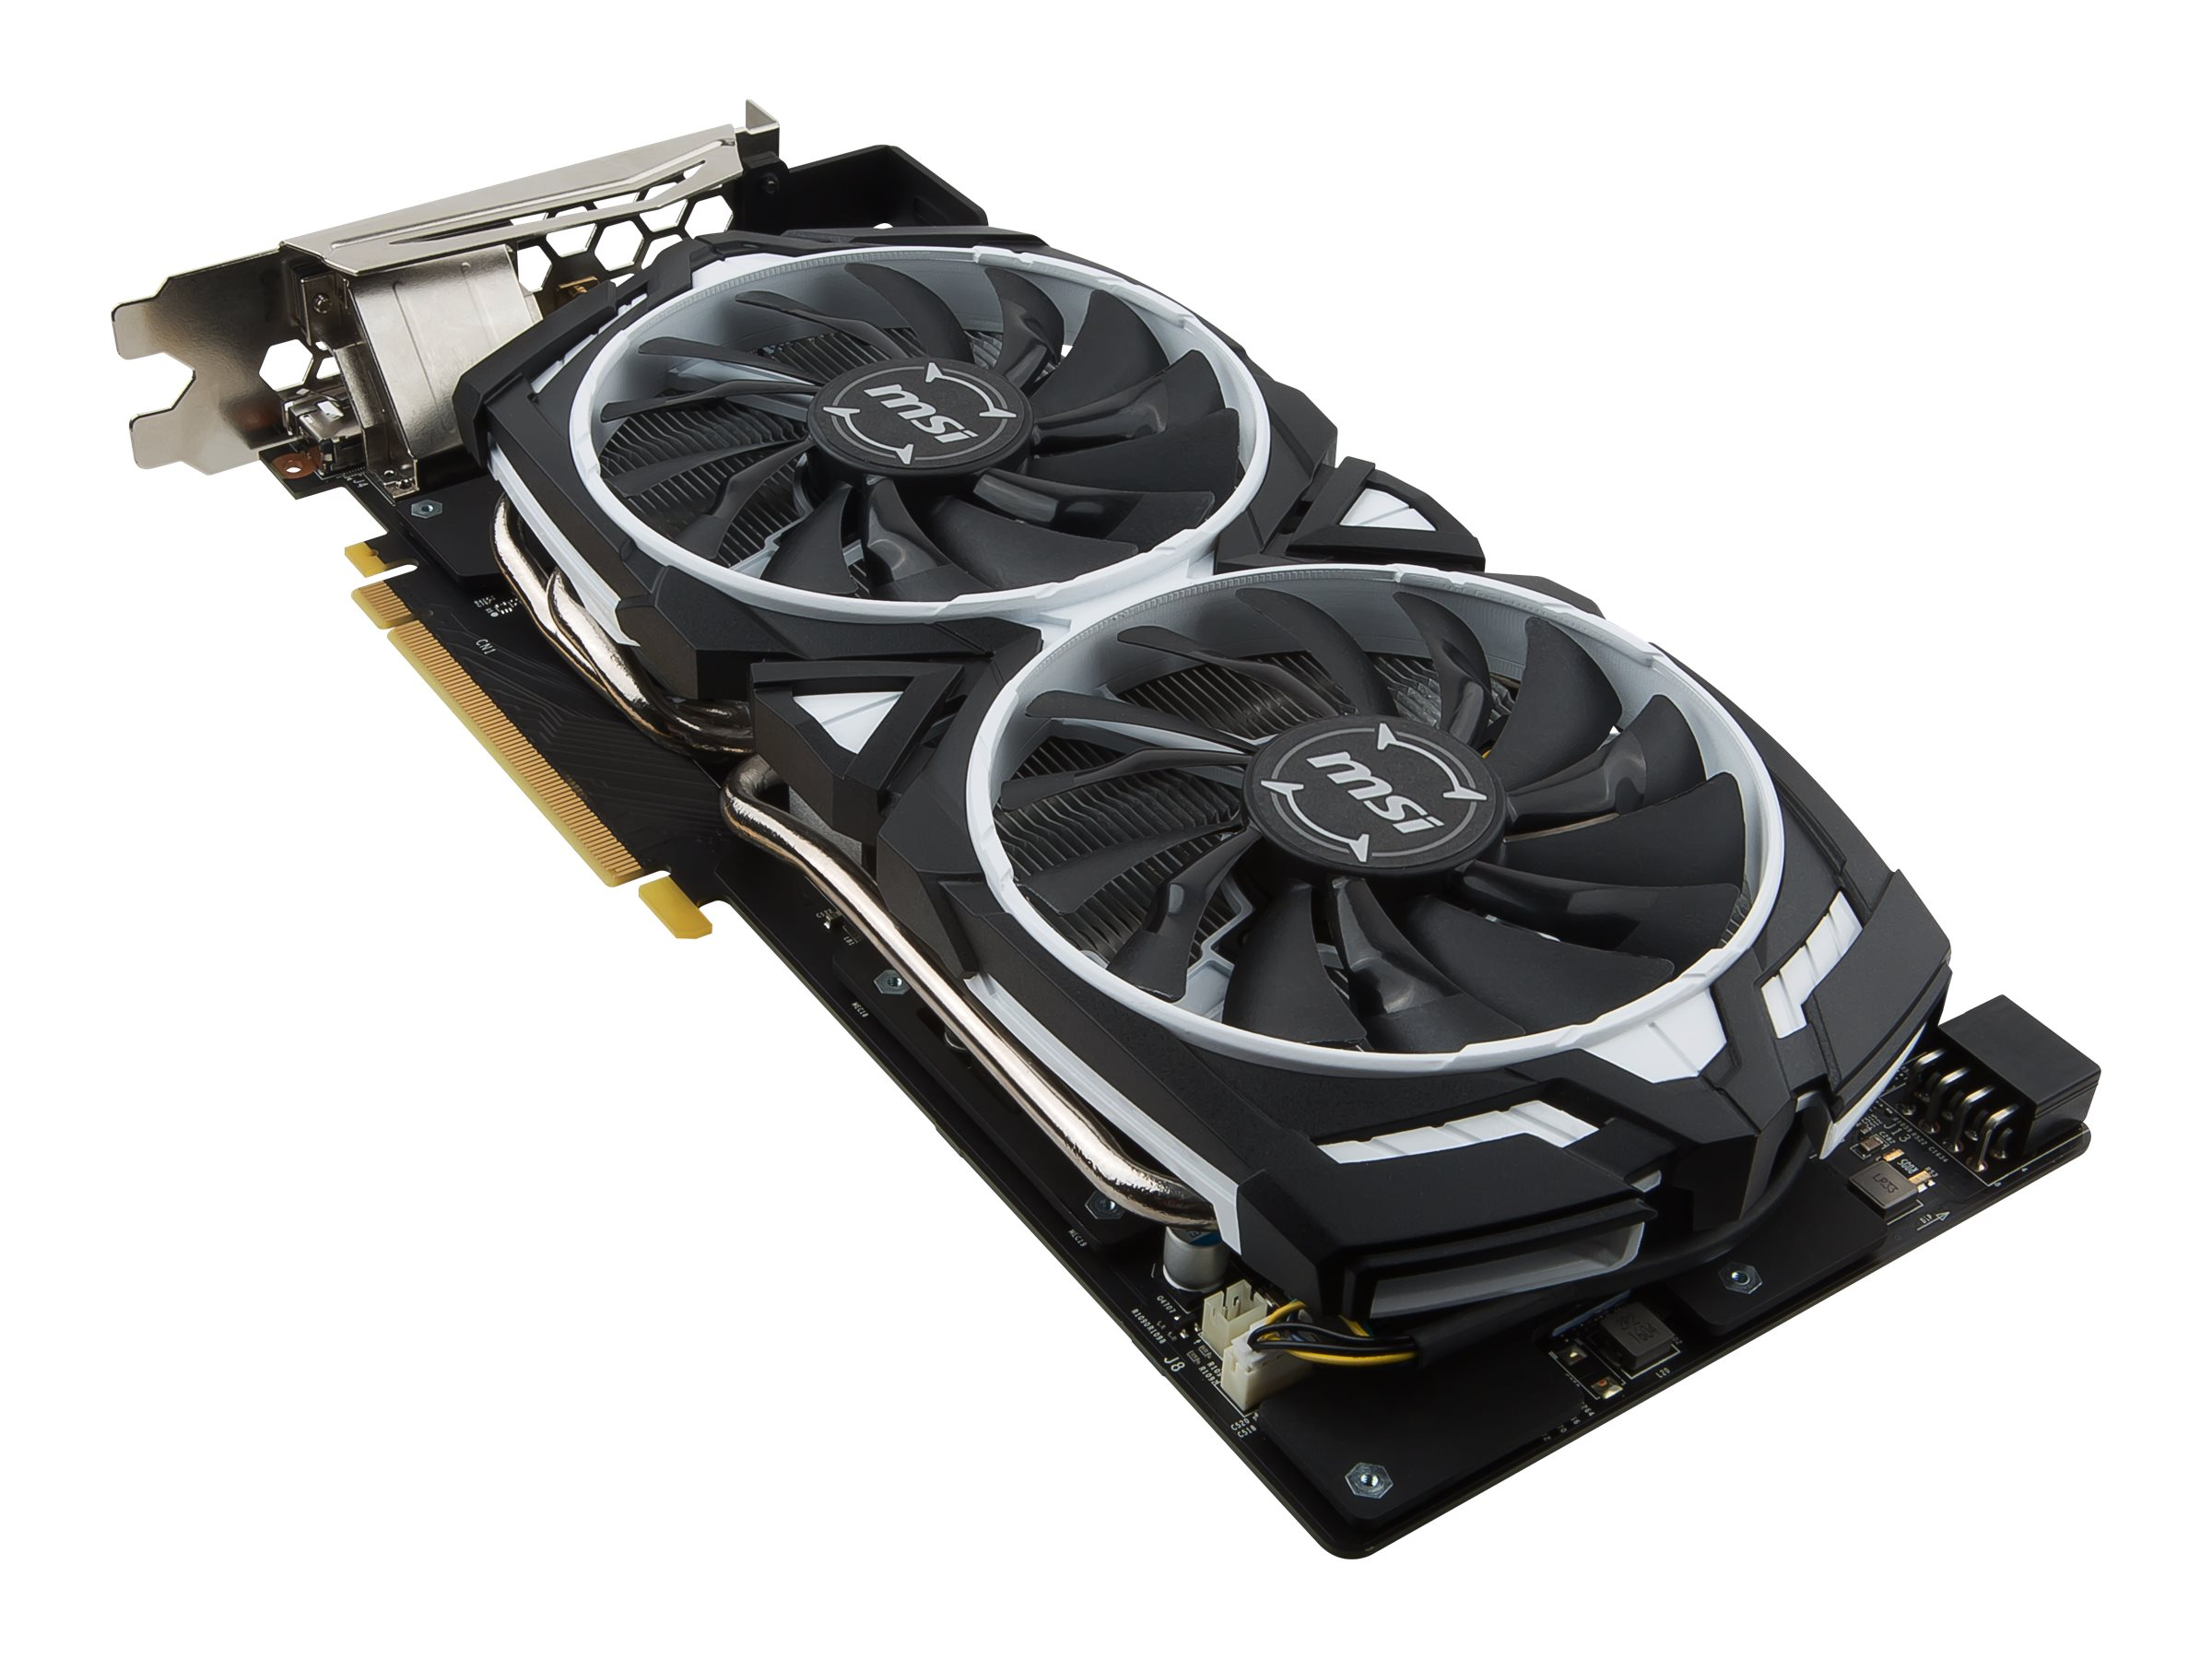 Microstar GeForce GTX 1070 Armor Overclocked Graphics Card, 8GB GDDR5